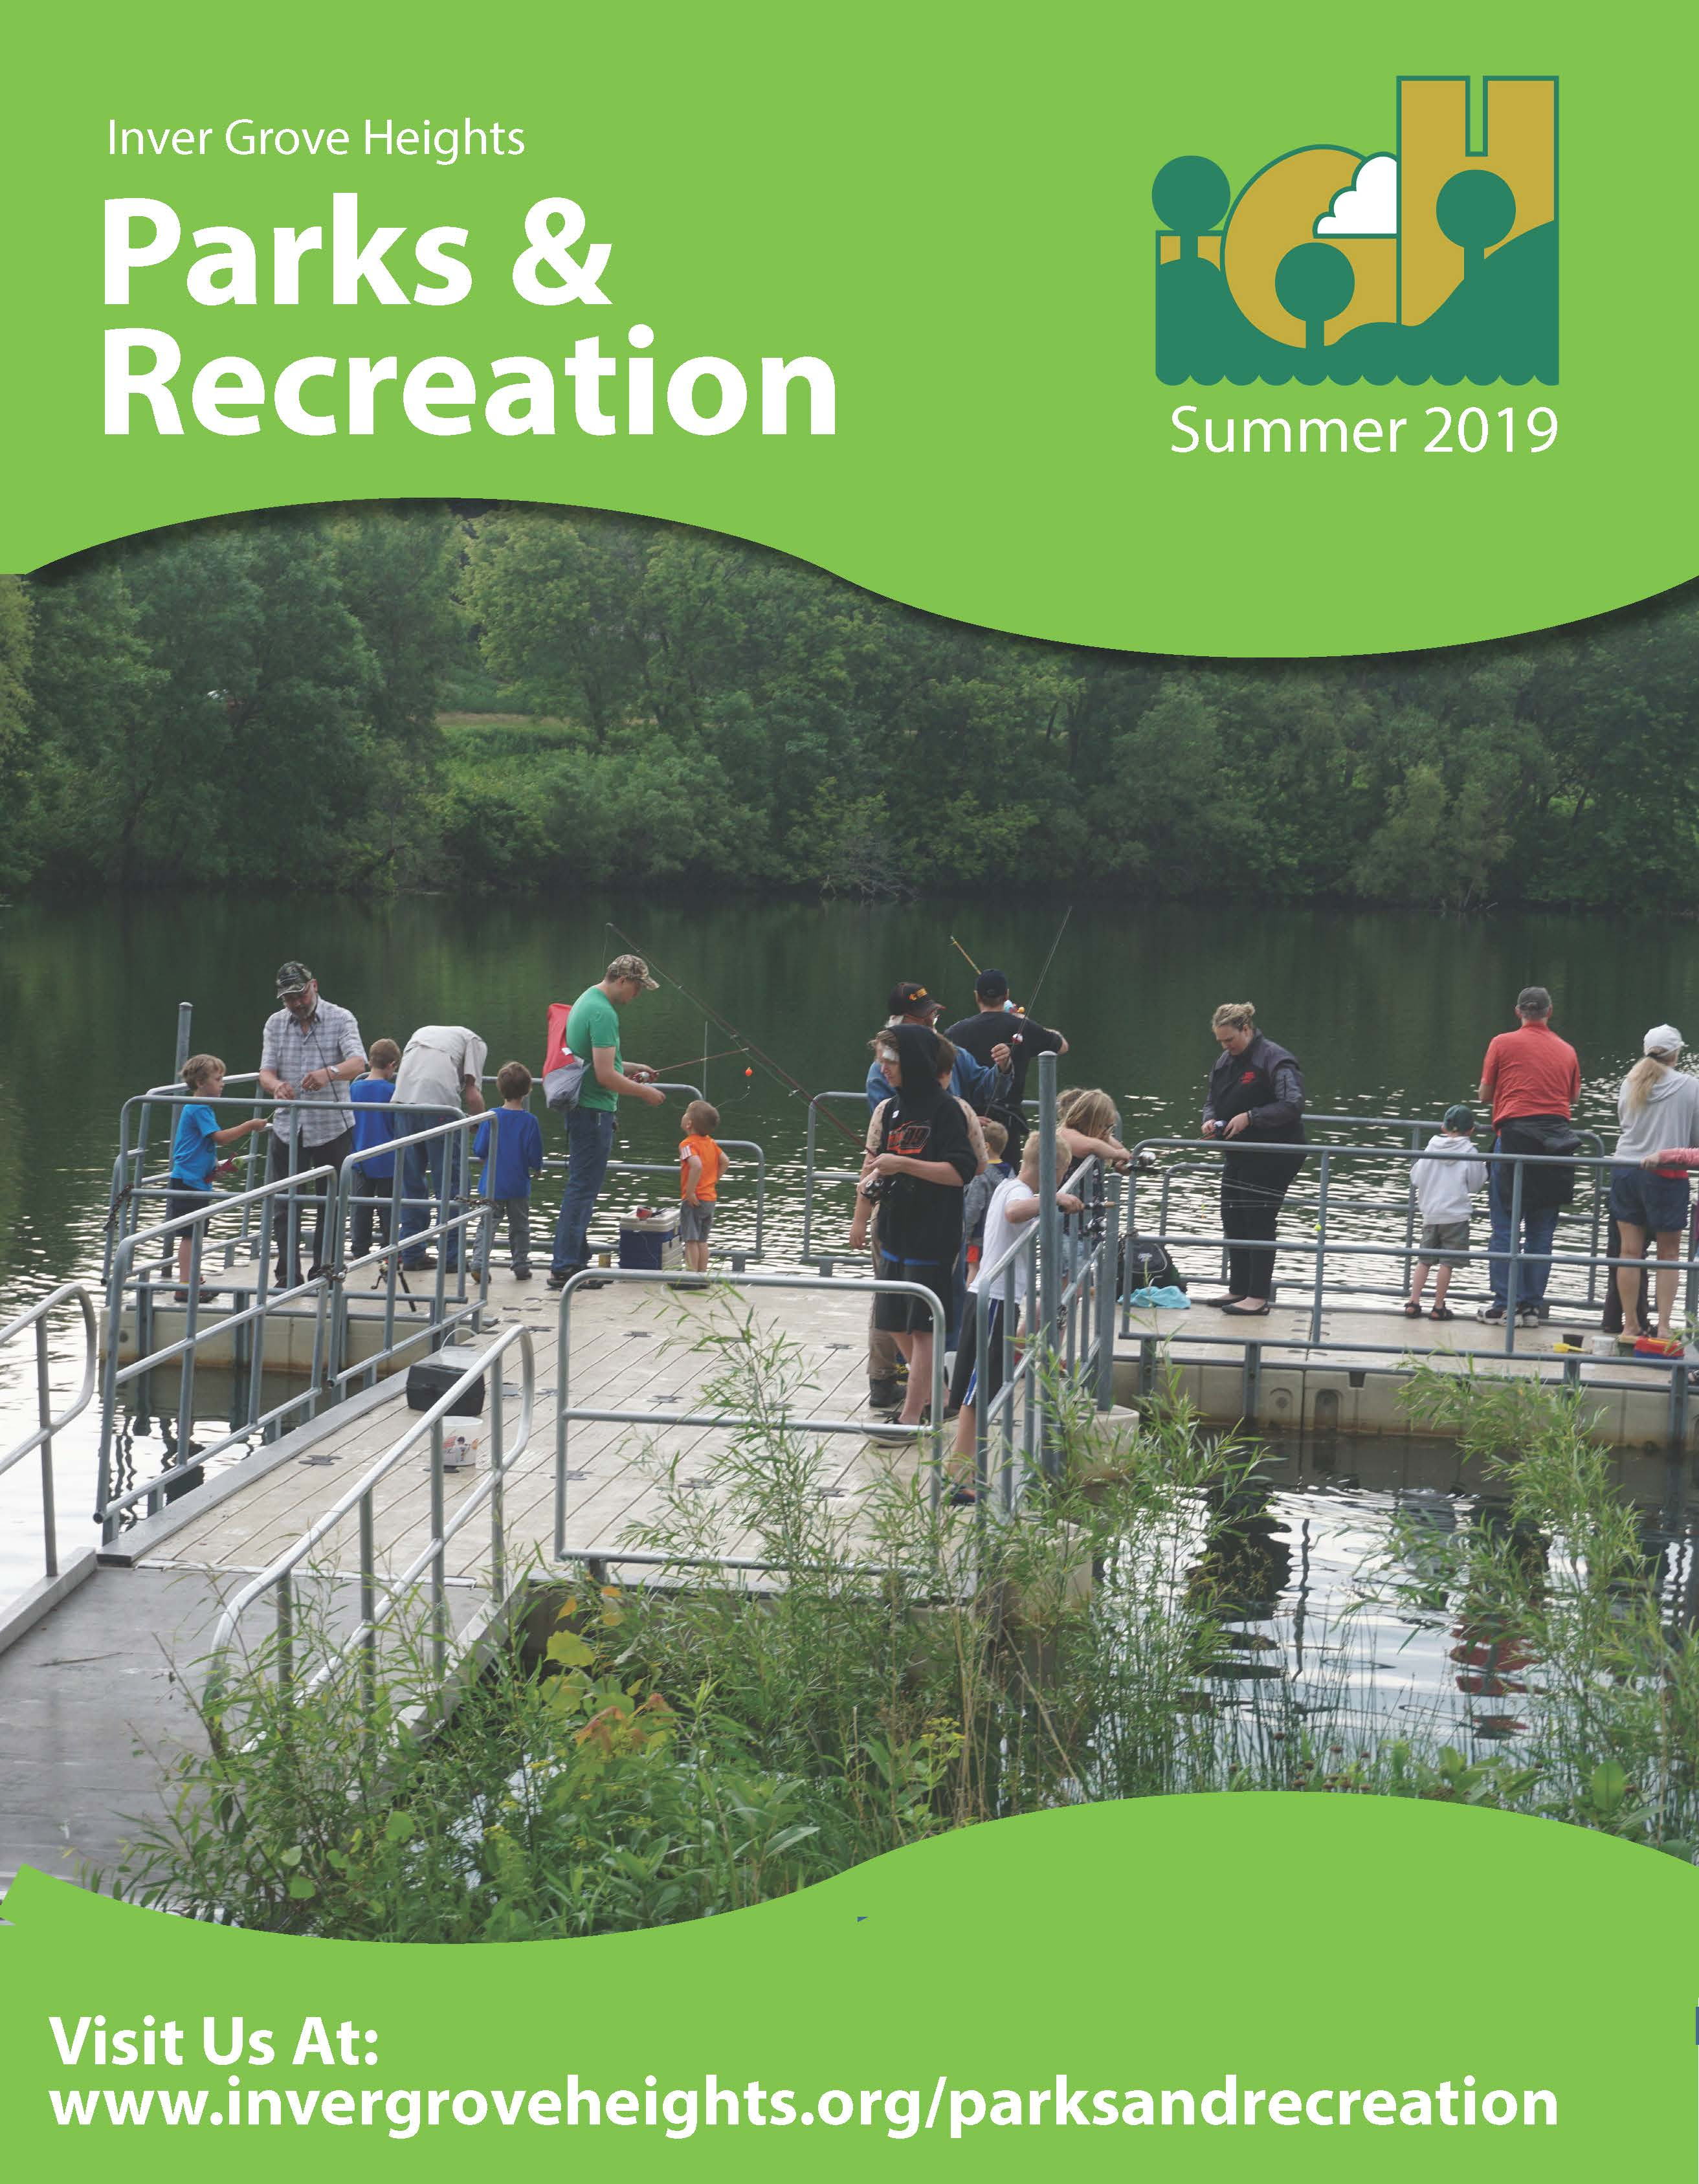 Image of Cover of the Inver Grove Heights Parks & Rec Summer 2019 Brochure